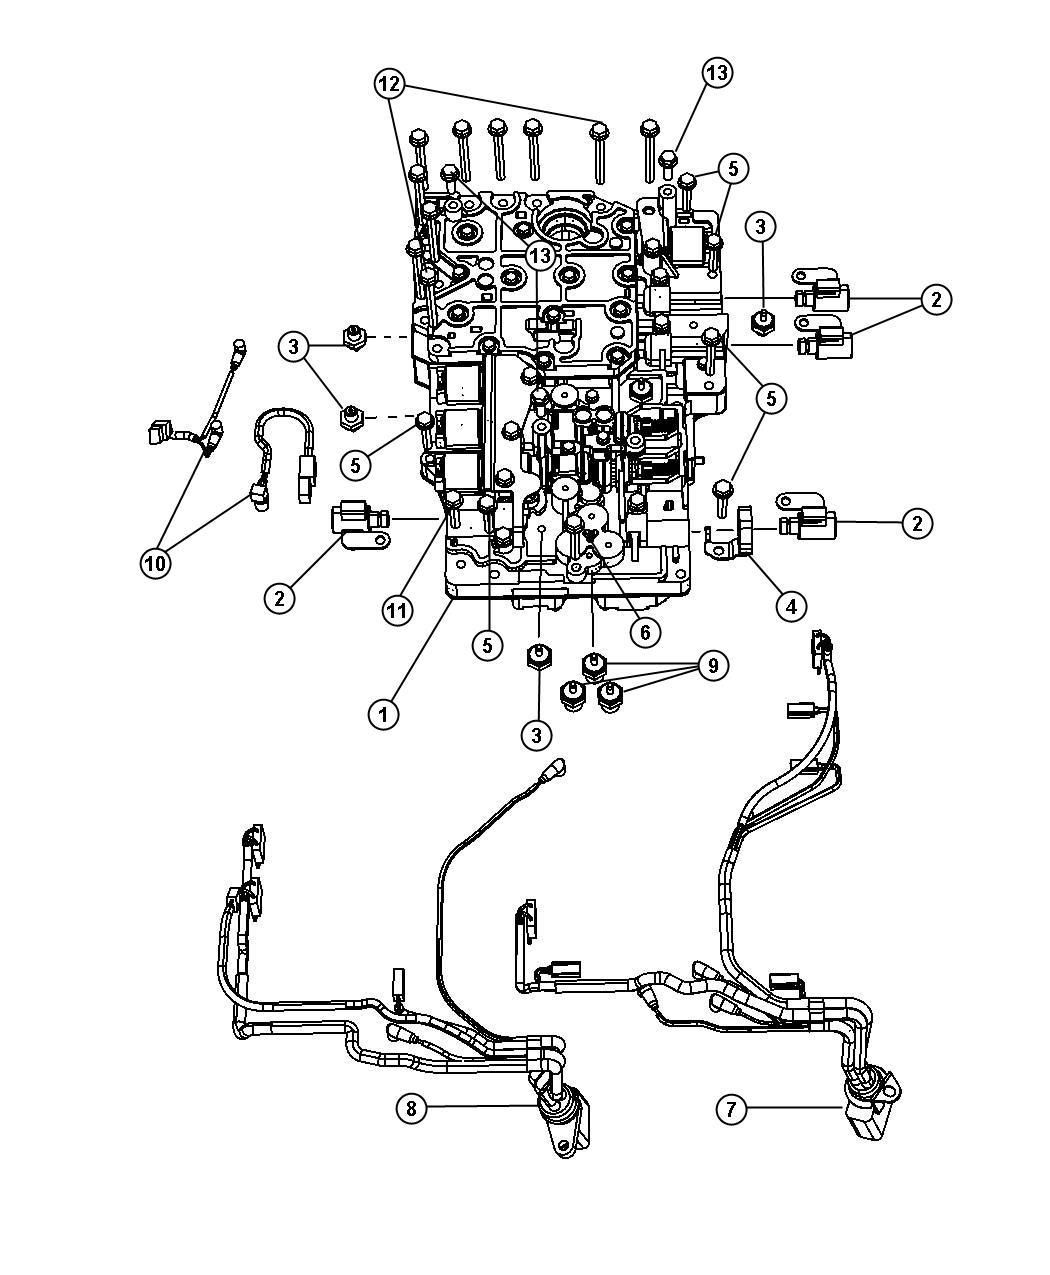 Wiring Diagram 91 Acura Integra